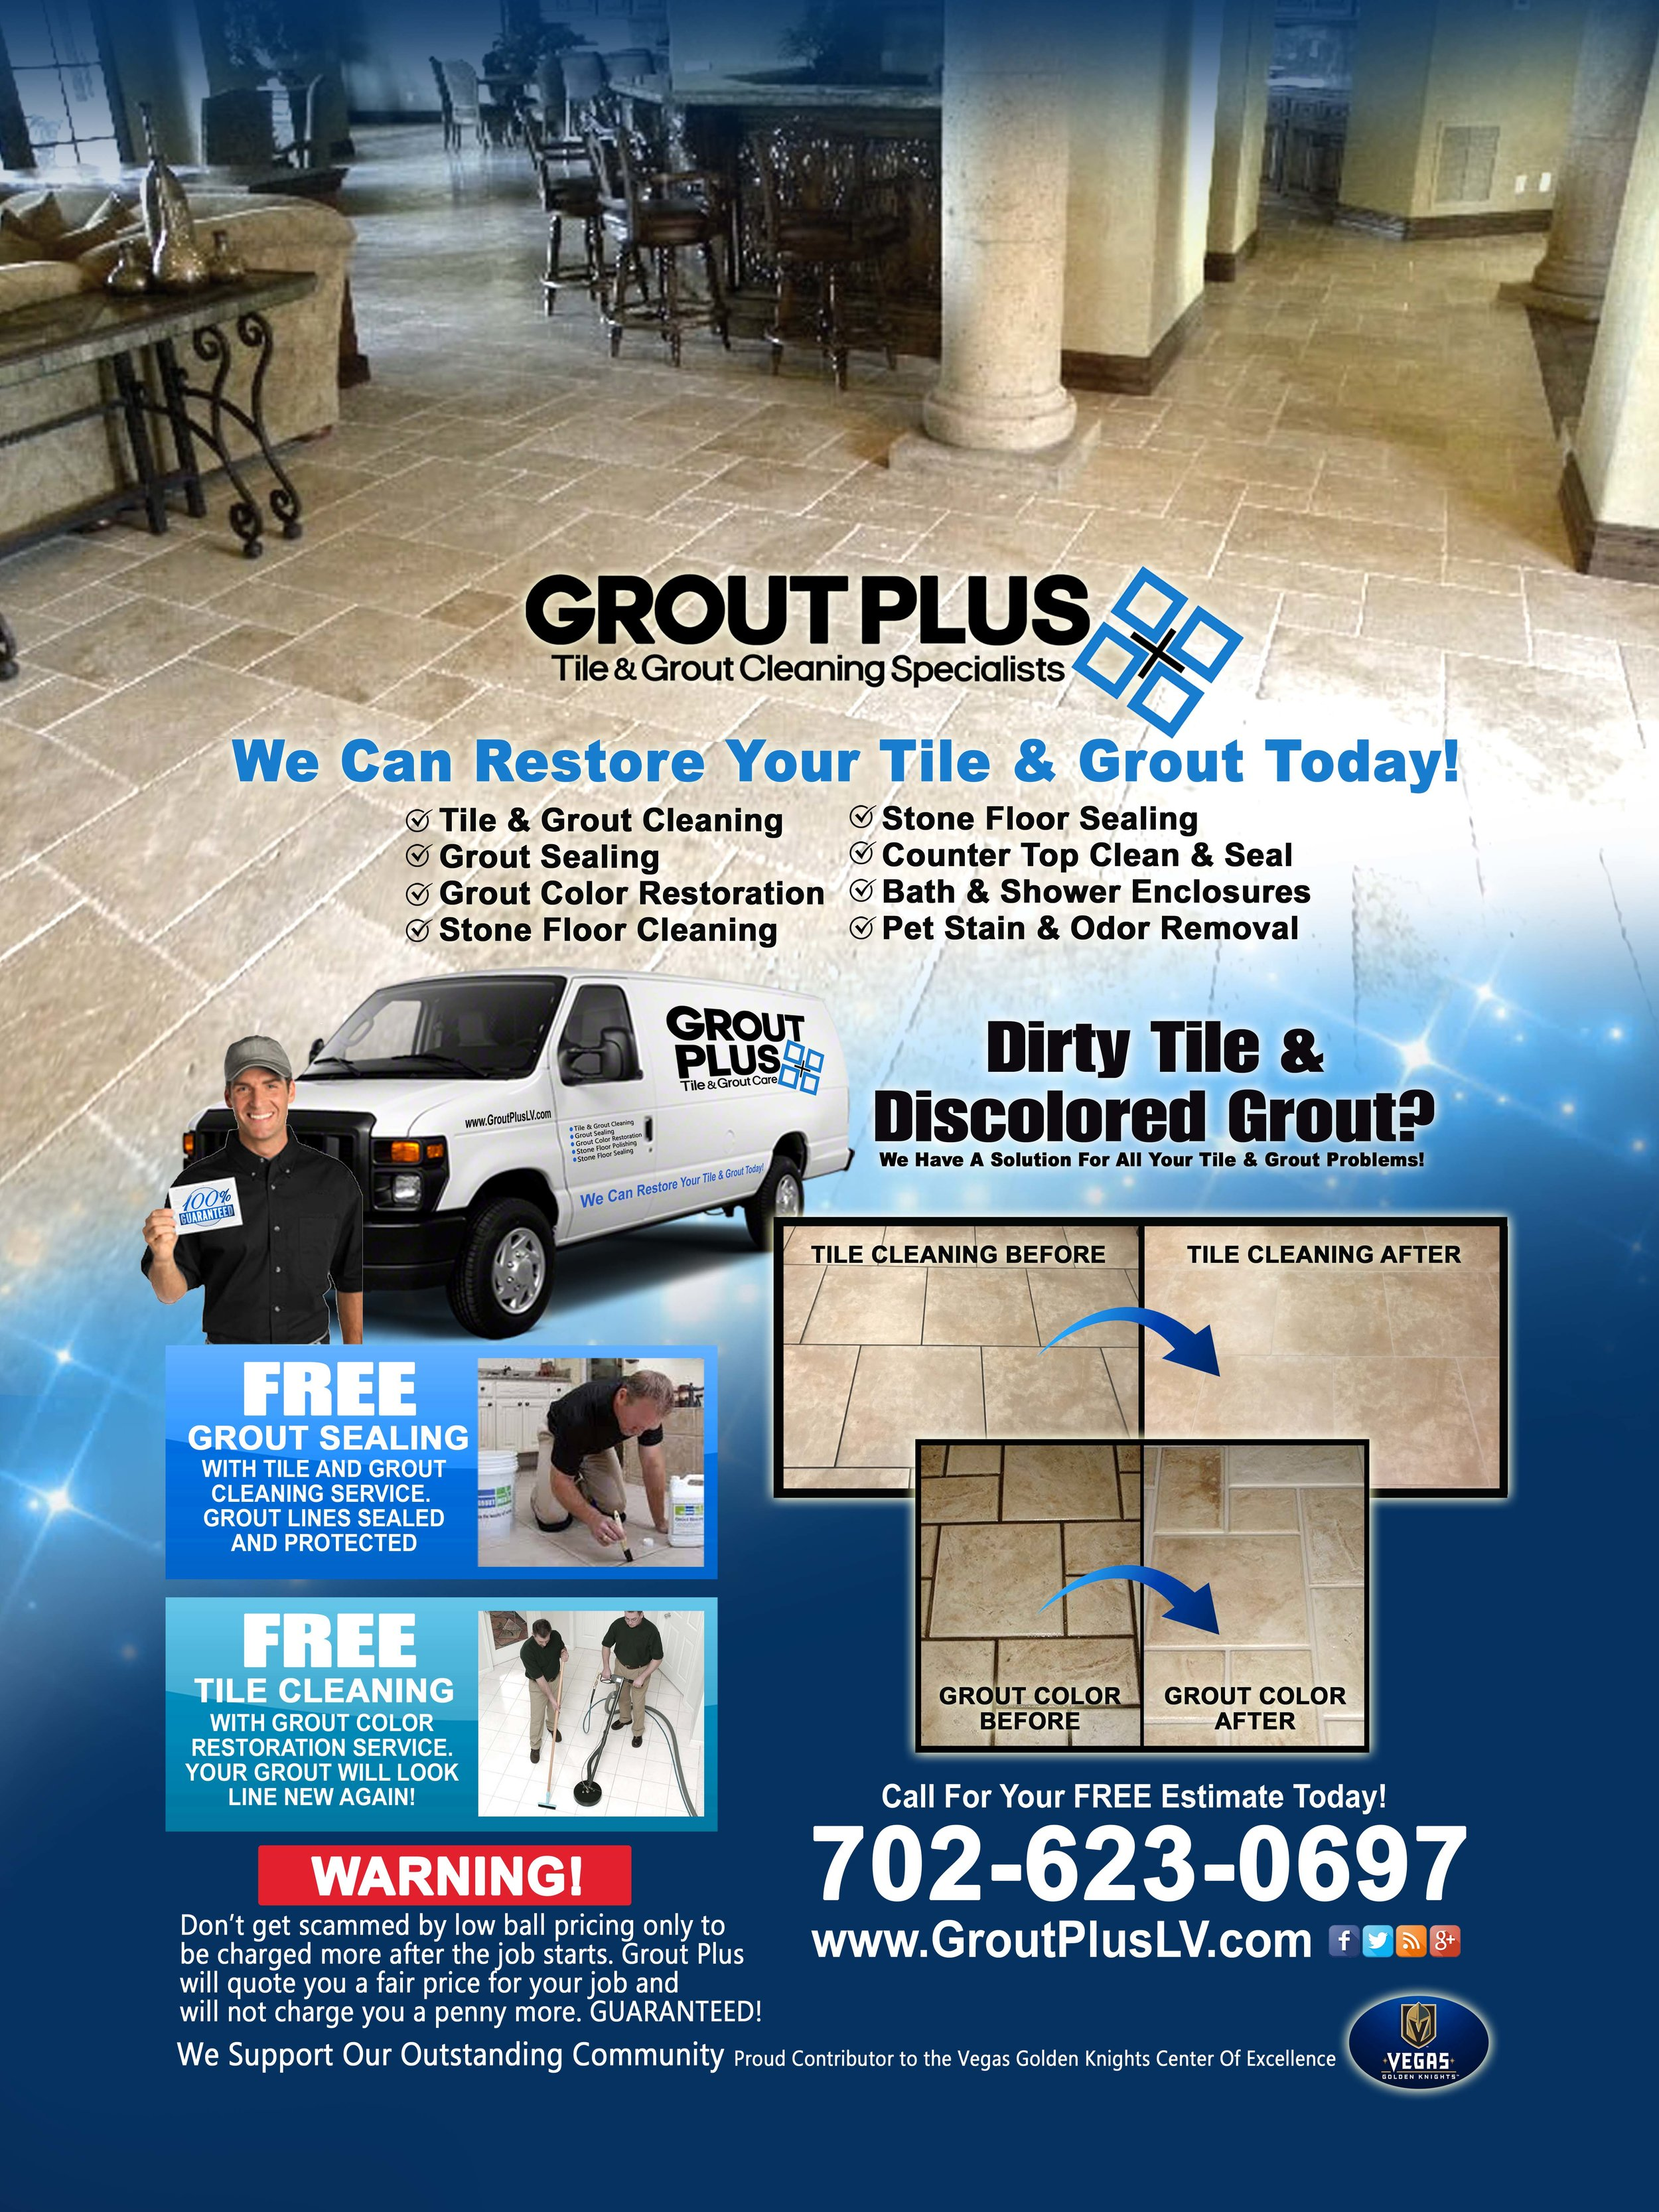 Grout Plus Tile And Grout Cleaning